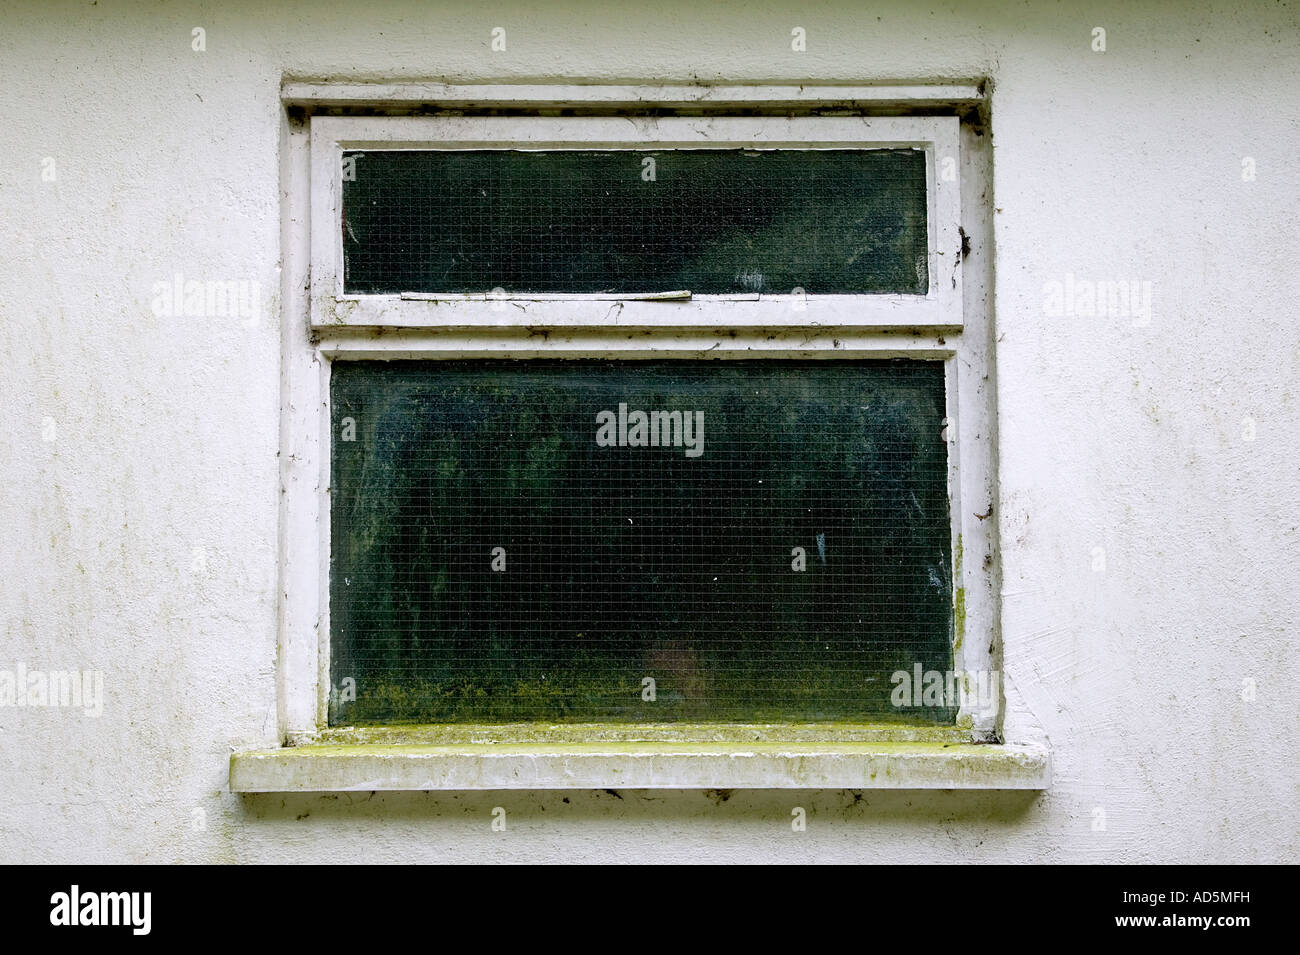 Grungy dirty old window on a white wall - Stock Image